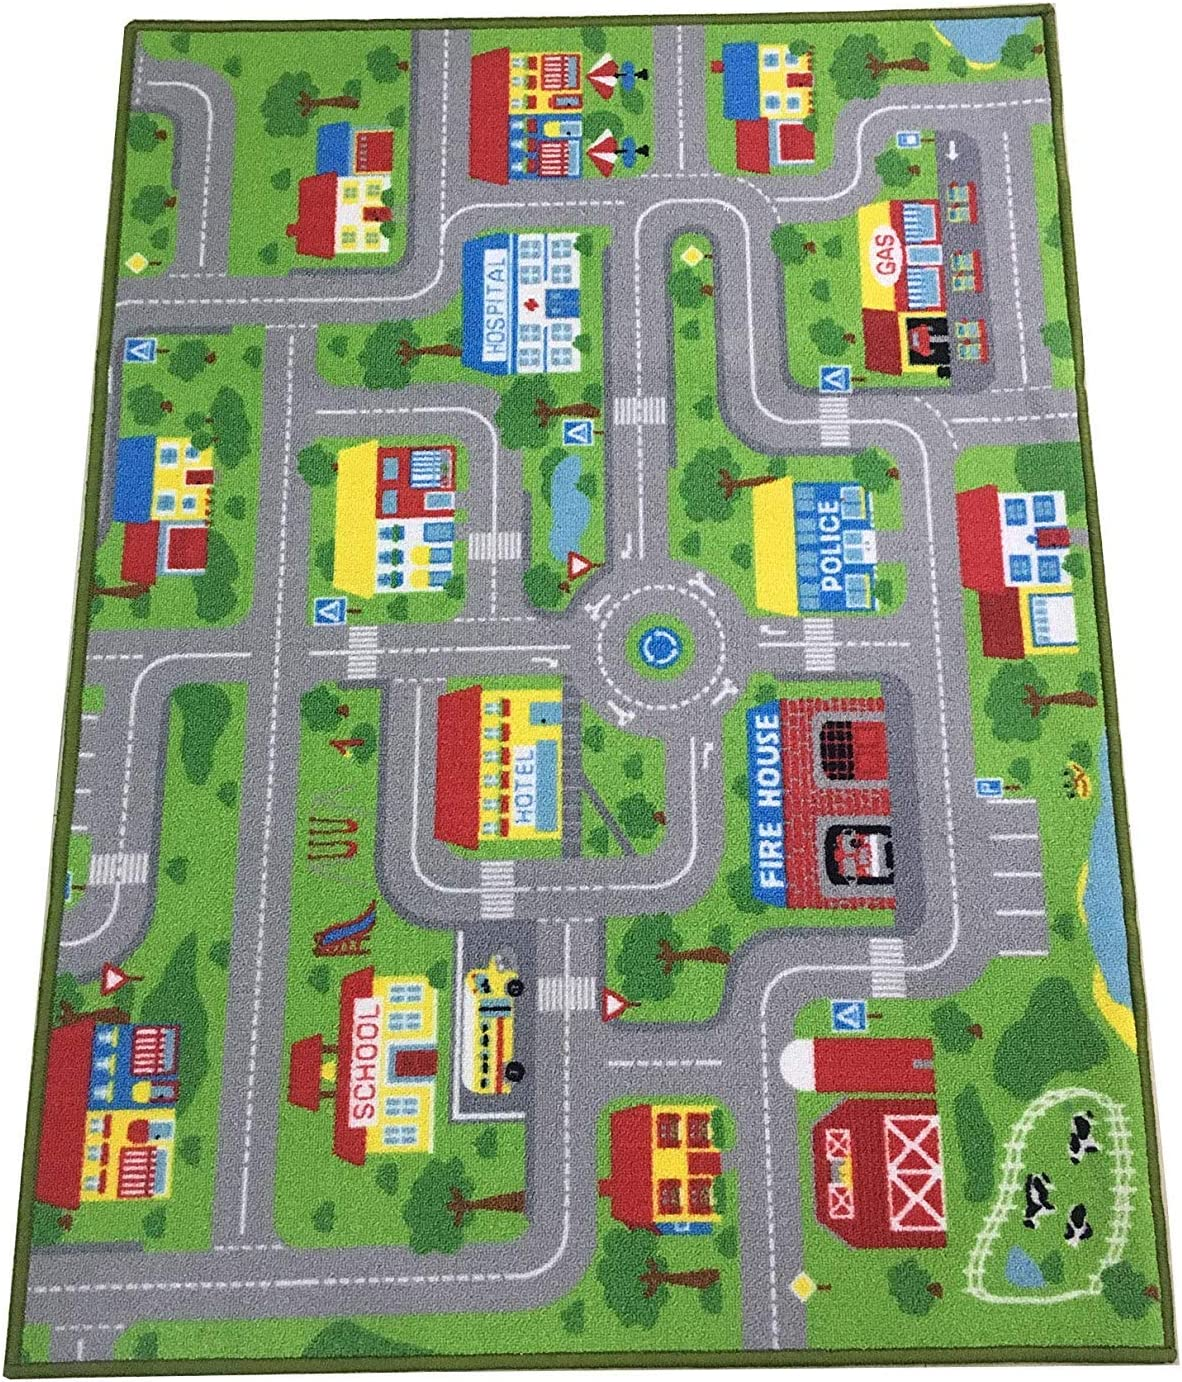 """City Street Map Kids' Rug with Roads Kids Rug Play mat with School Hospital Station Bank Hotel Book Store Government Workshop Farm for Boy Girl Nursery Bedroom Playroom Classroom (51"""" X 75"""")"""